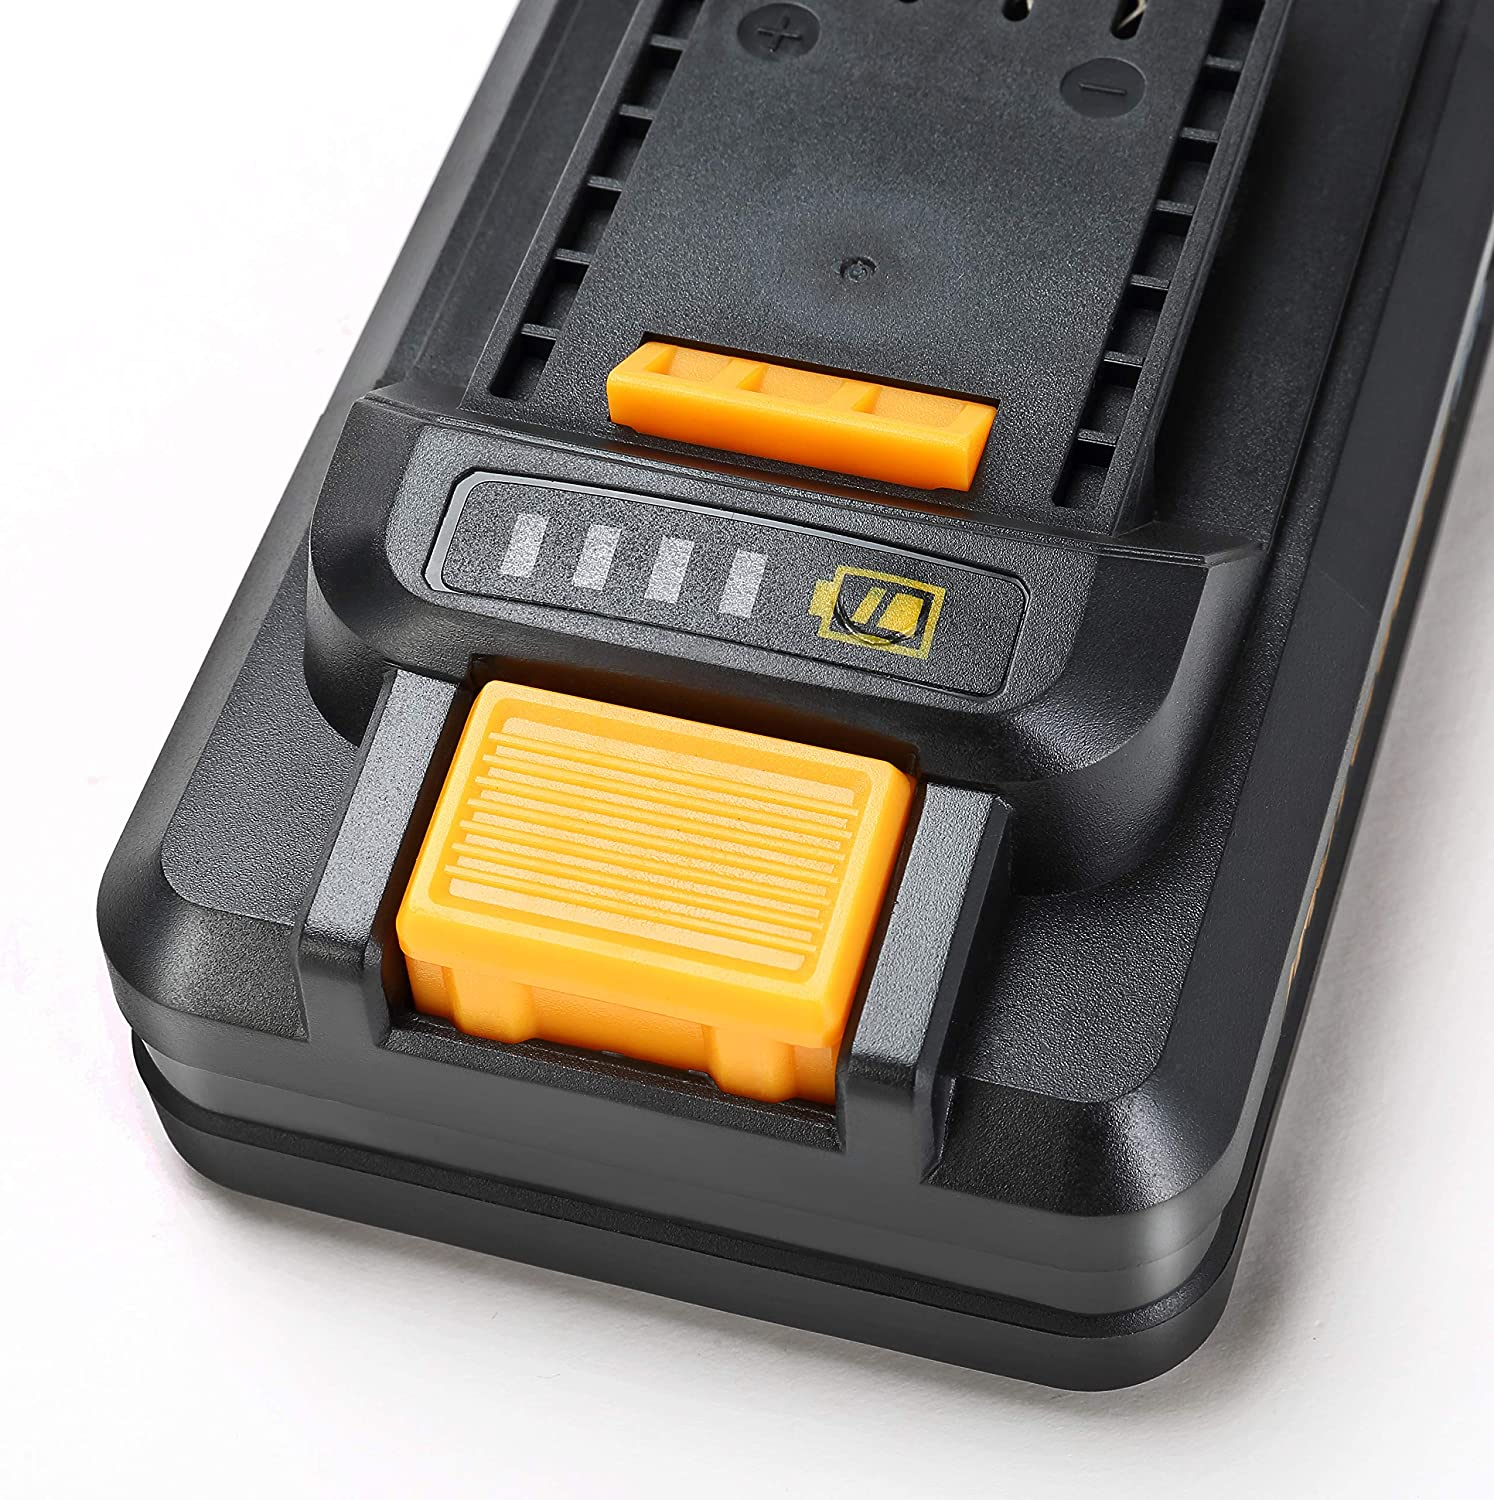 USA-Based Compatible with all 20V ULTRA Platform Tools MOTORHEAD 20V ULTRA Lithium-Ion Compact 2Ah Battery